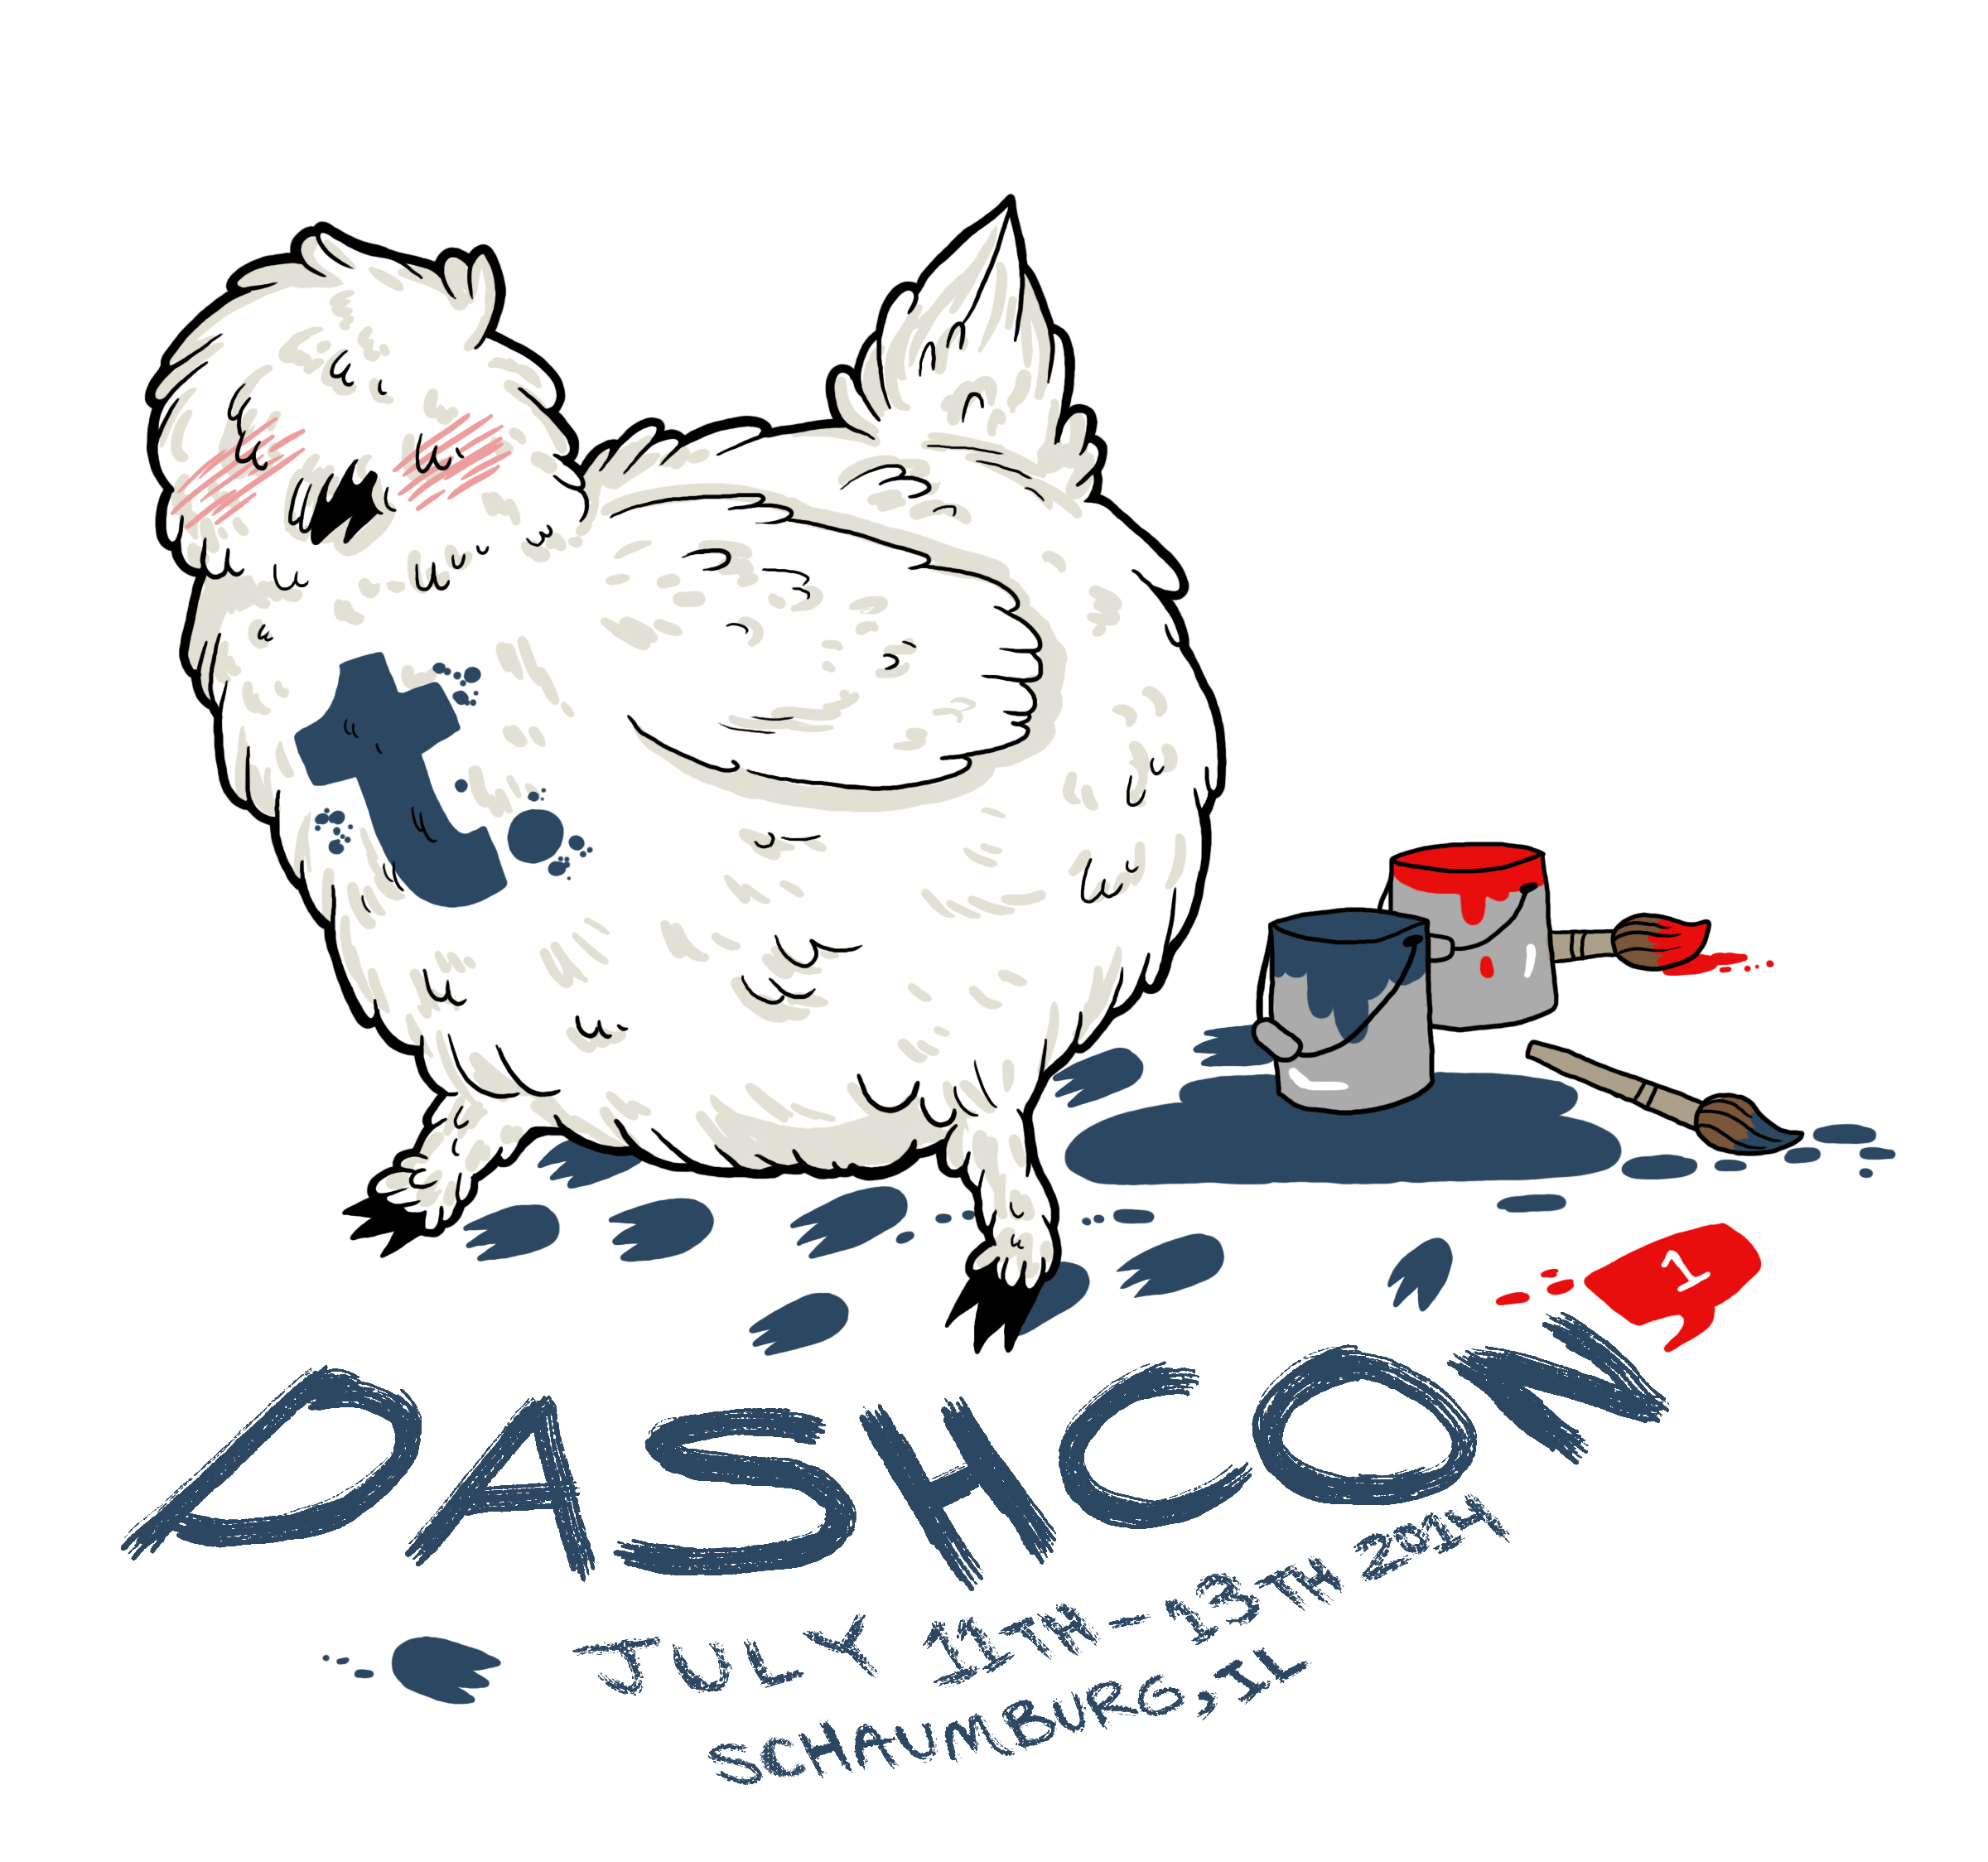 Dashcon 2014: First Year Woes